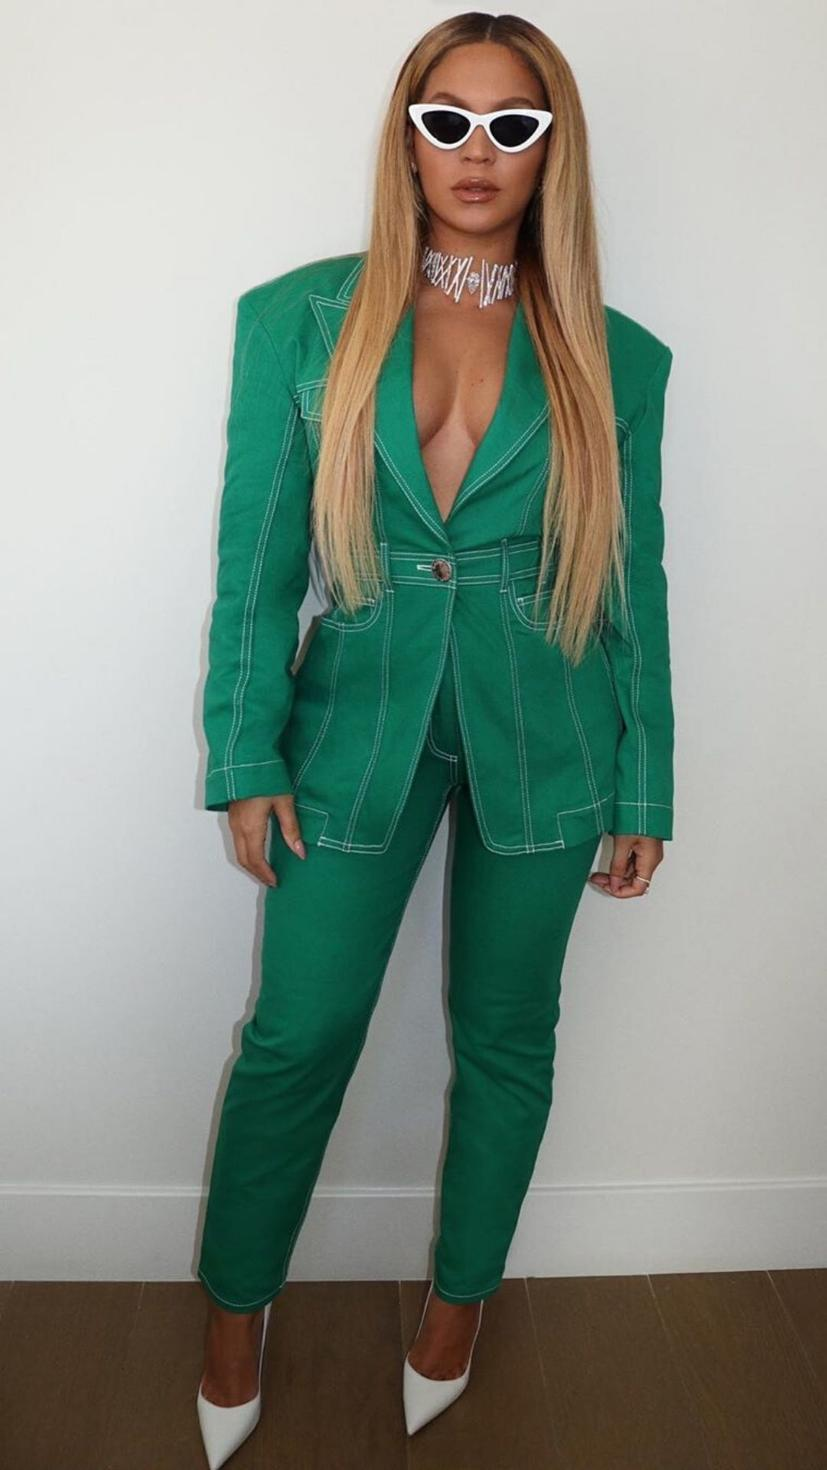 Beyonce attends the Super Bowl in a Balmain Spring 2020 green blazer and trousers with Messika jewellery and white pumps by Le Silla